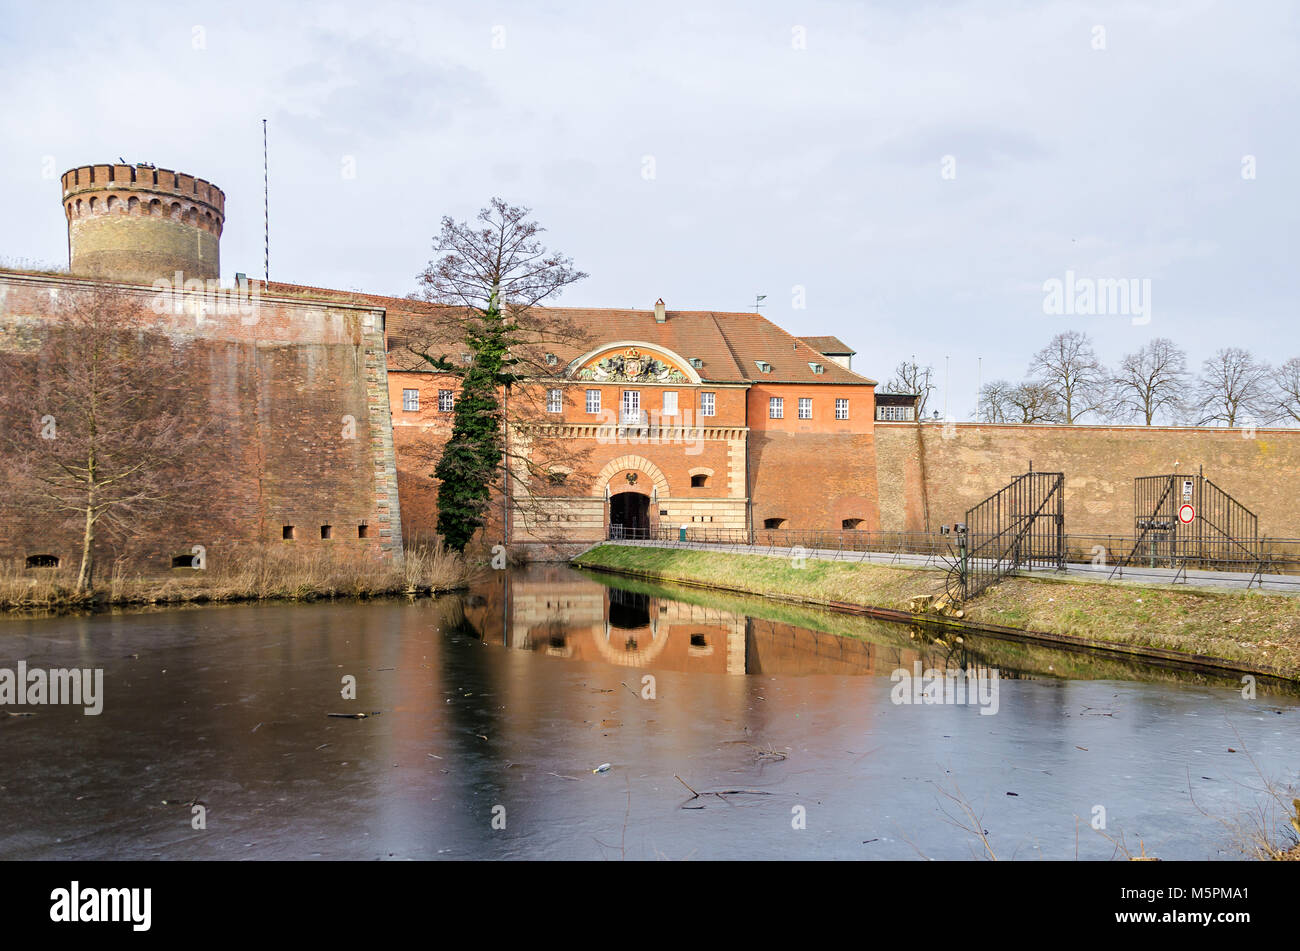 Spandau Citadel, one of the best preserved Renaissance military structures of Europe, now a museum. The part of the bastion Koenig (king bastion) with Stock Photo